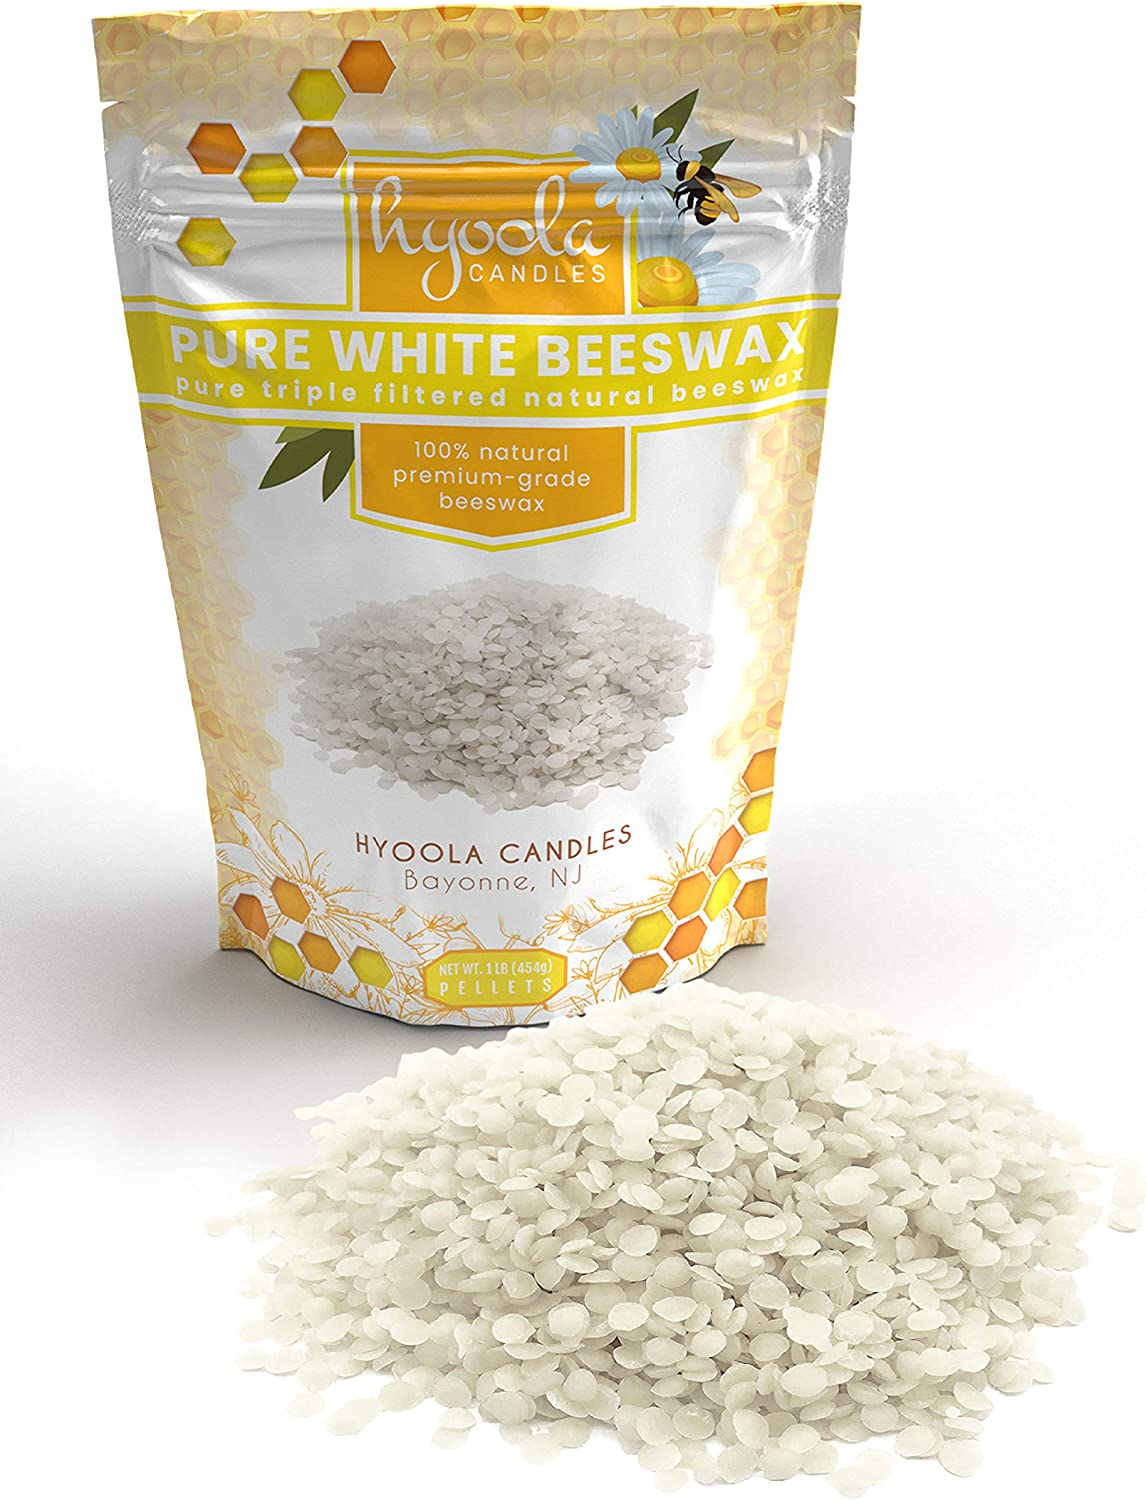 Hyoola White Beeswax Pellets - 100% Natural - Premium Cosmetic Grade - Pure Beeswax Pellets - 1 Pound - Triple Filtered Easy Melt Bees Wax Pastilles